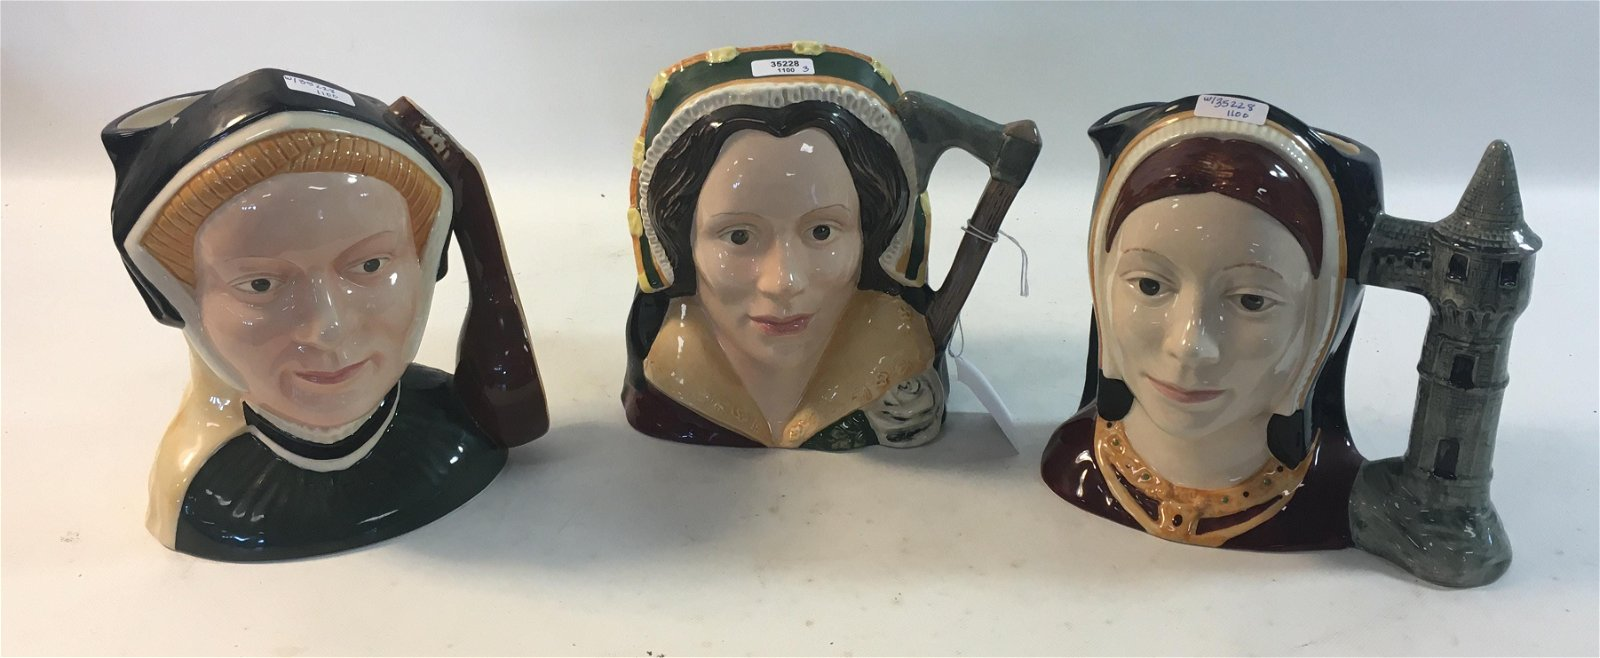 SET OF 3 ROYAL DOULTON LARGE CHARACTER JUGS, CATHERINE